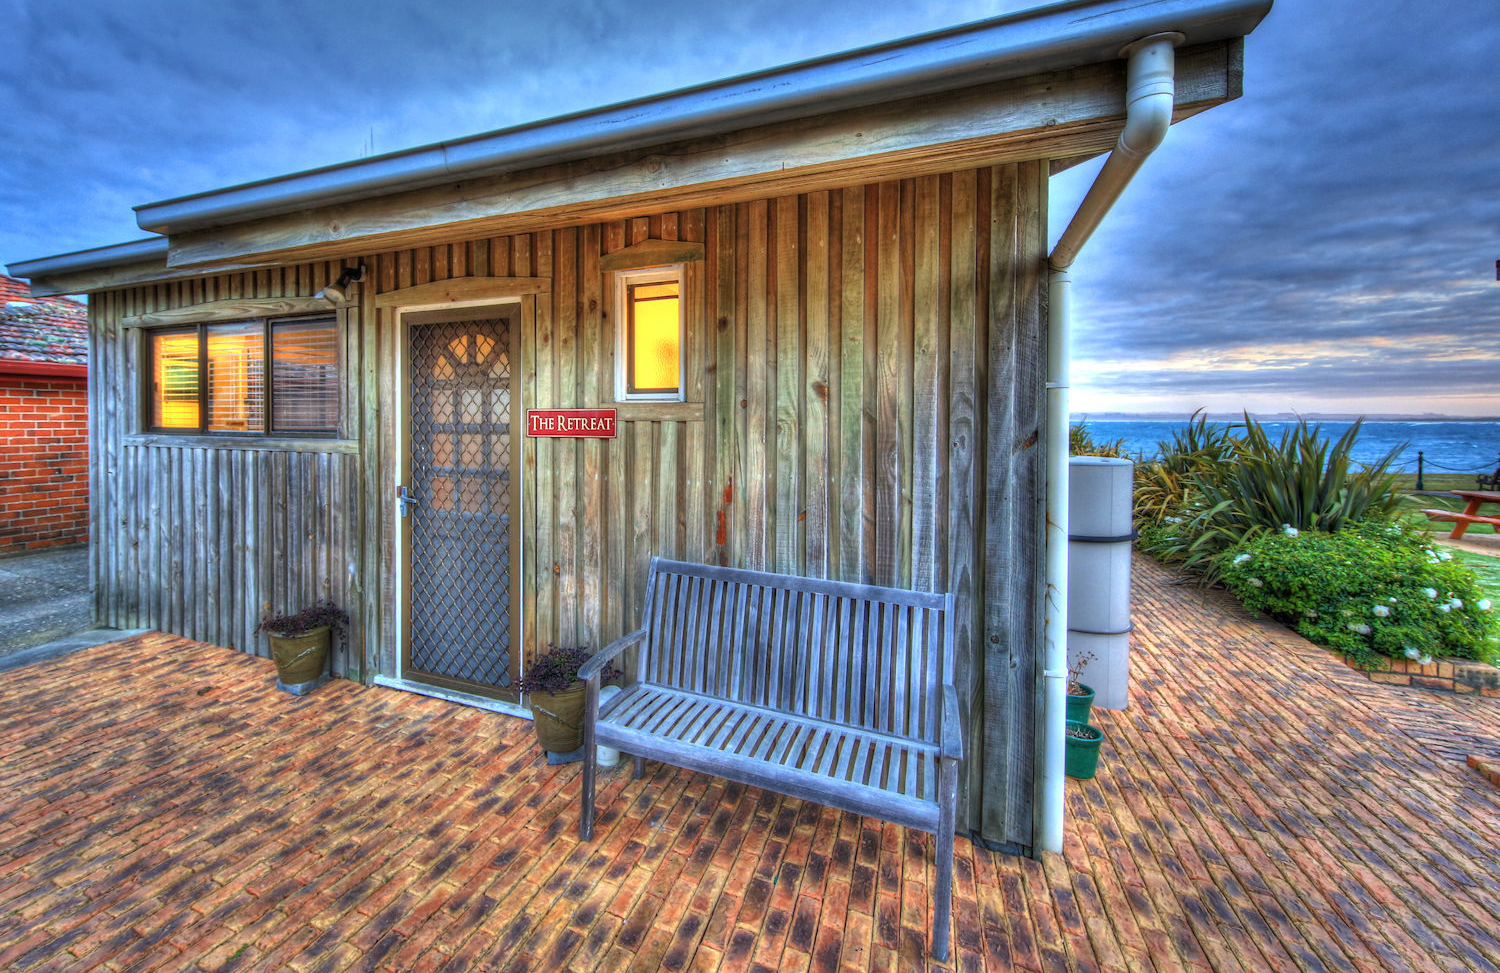 Stanley Village Waterfront Accommodation - The Retreat